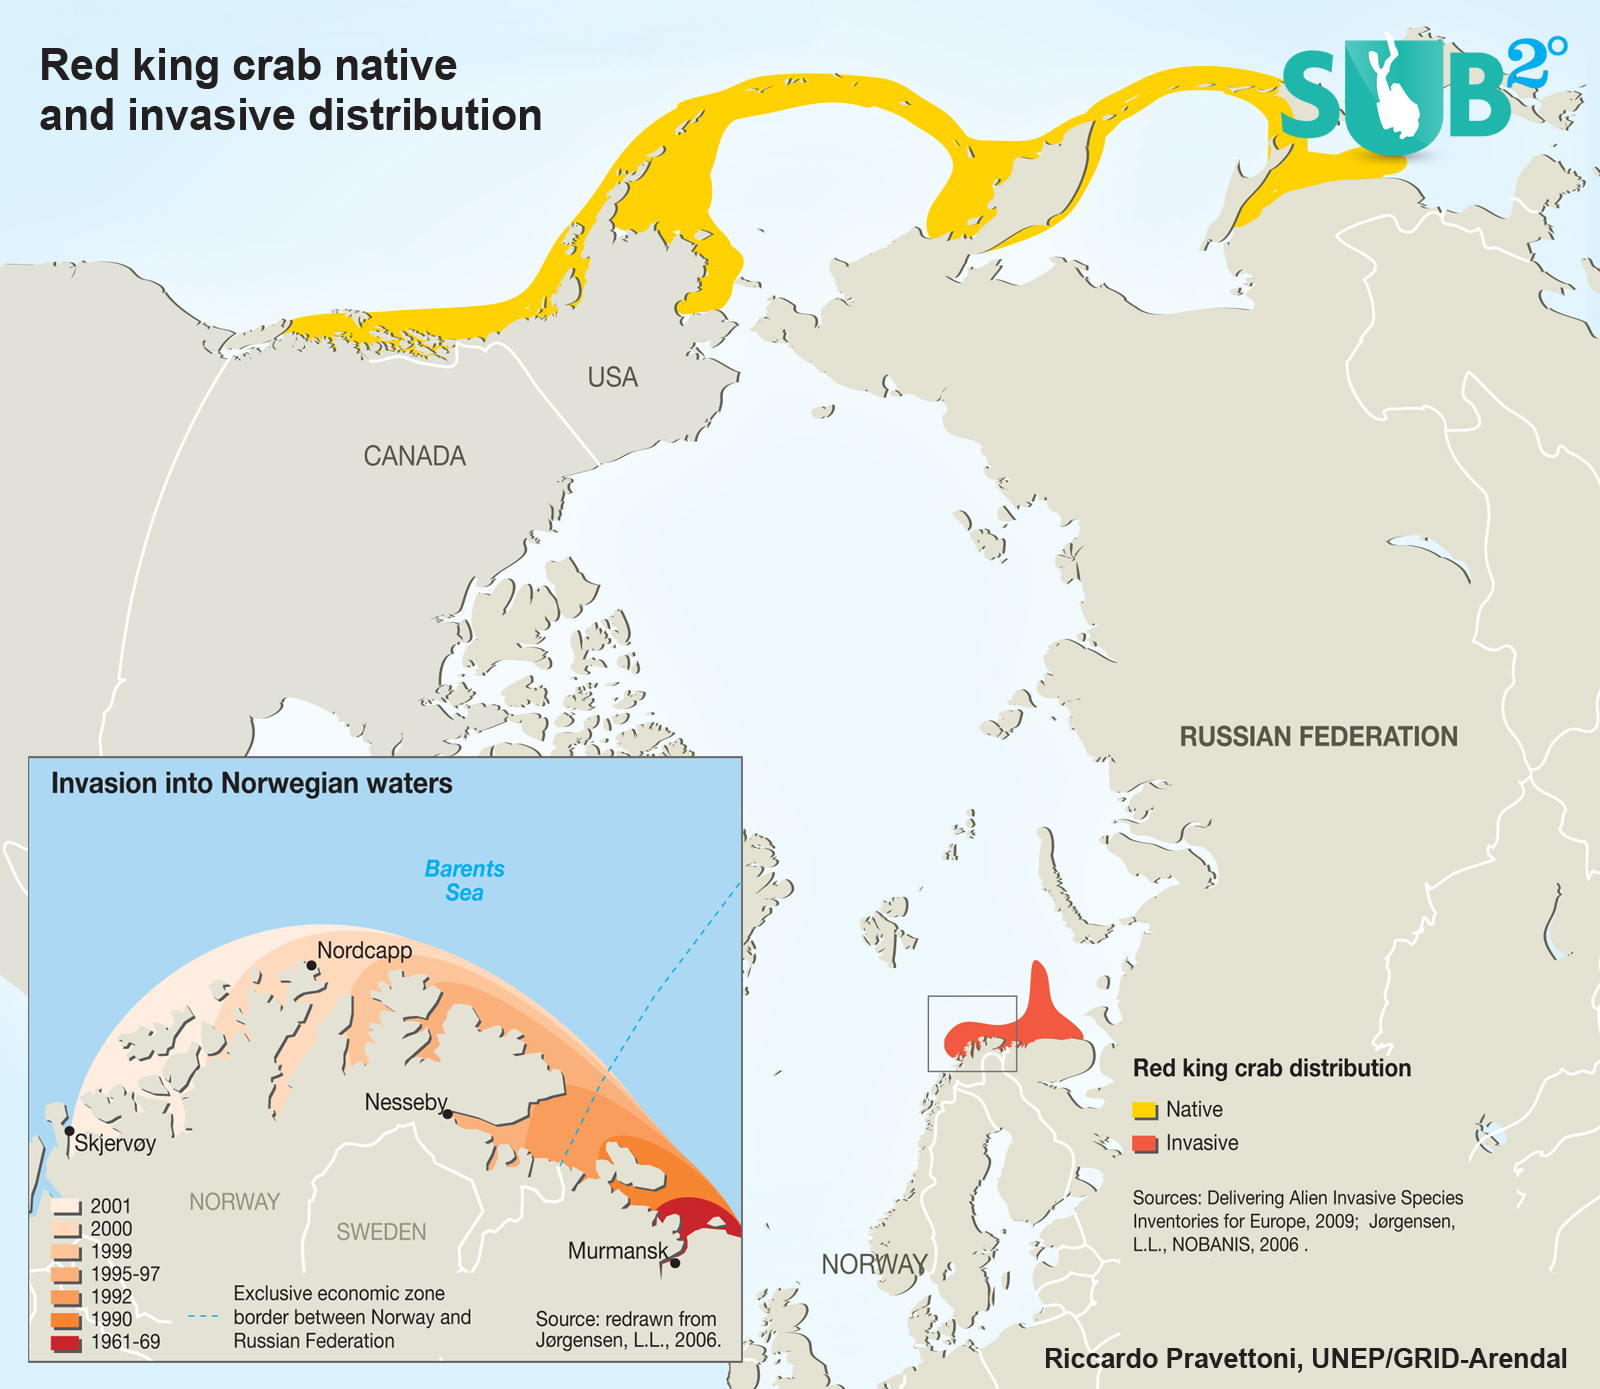 The map shows the distribution of red king crab, both native and invasive.